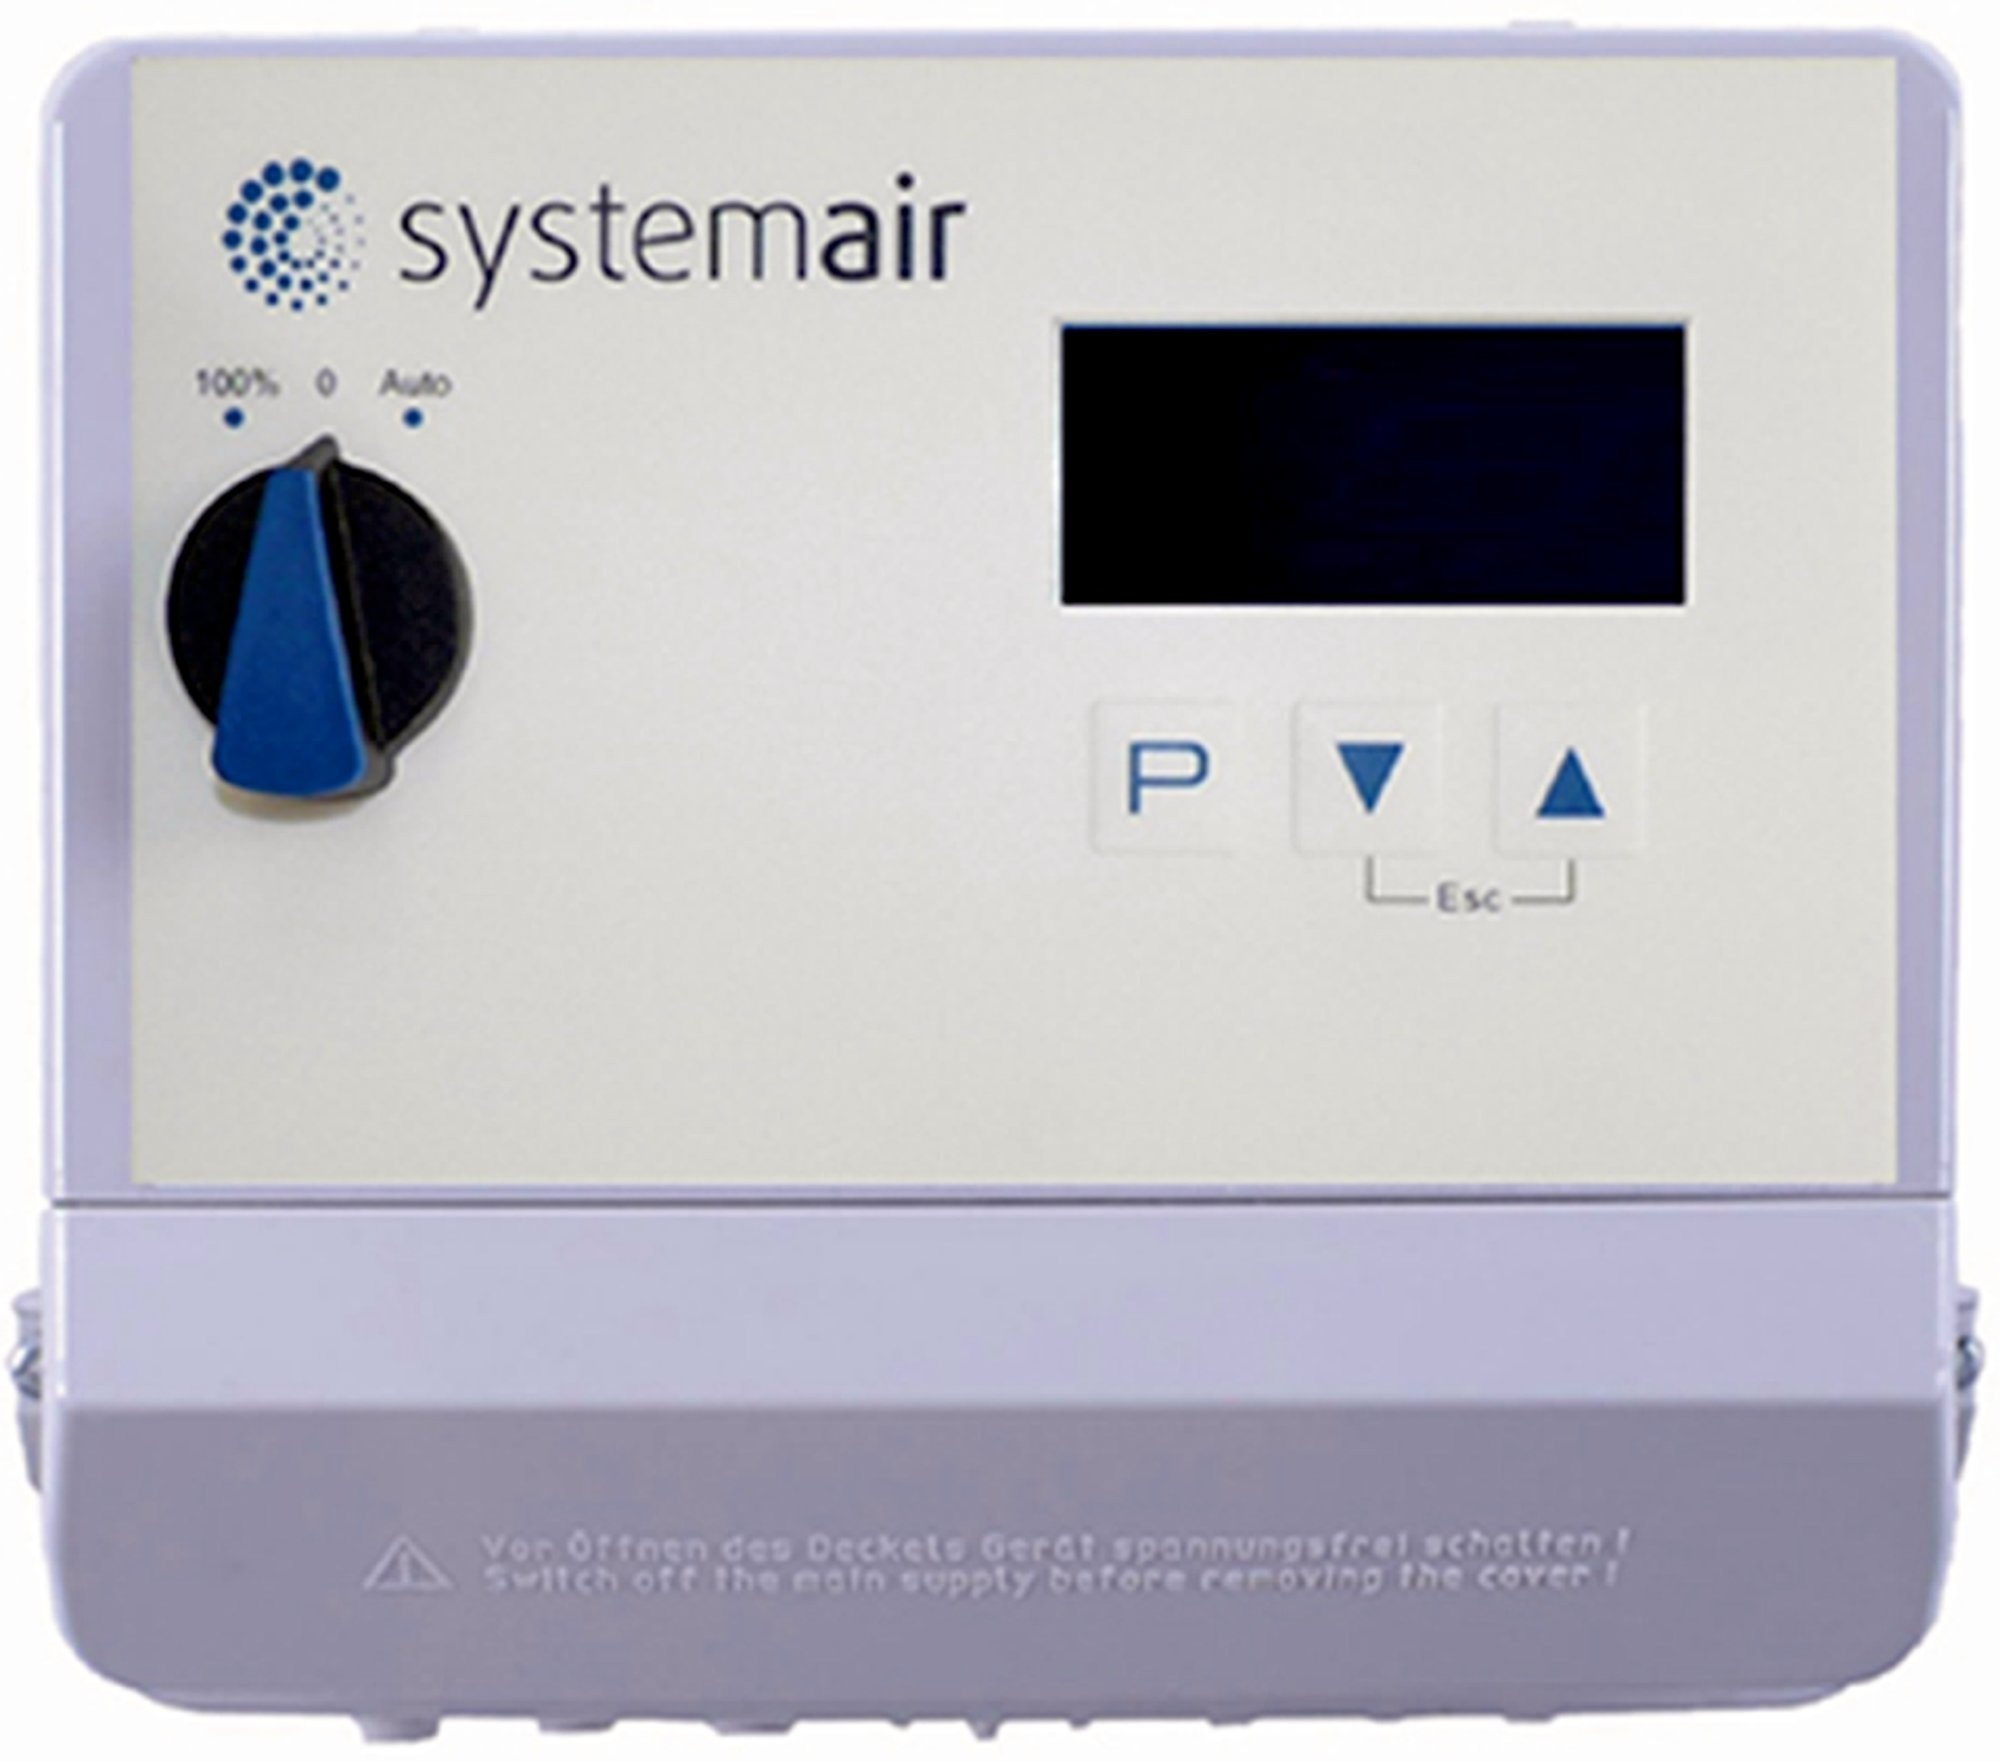 REPT 6 REGULATOR - Systemair